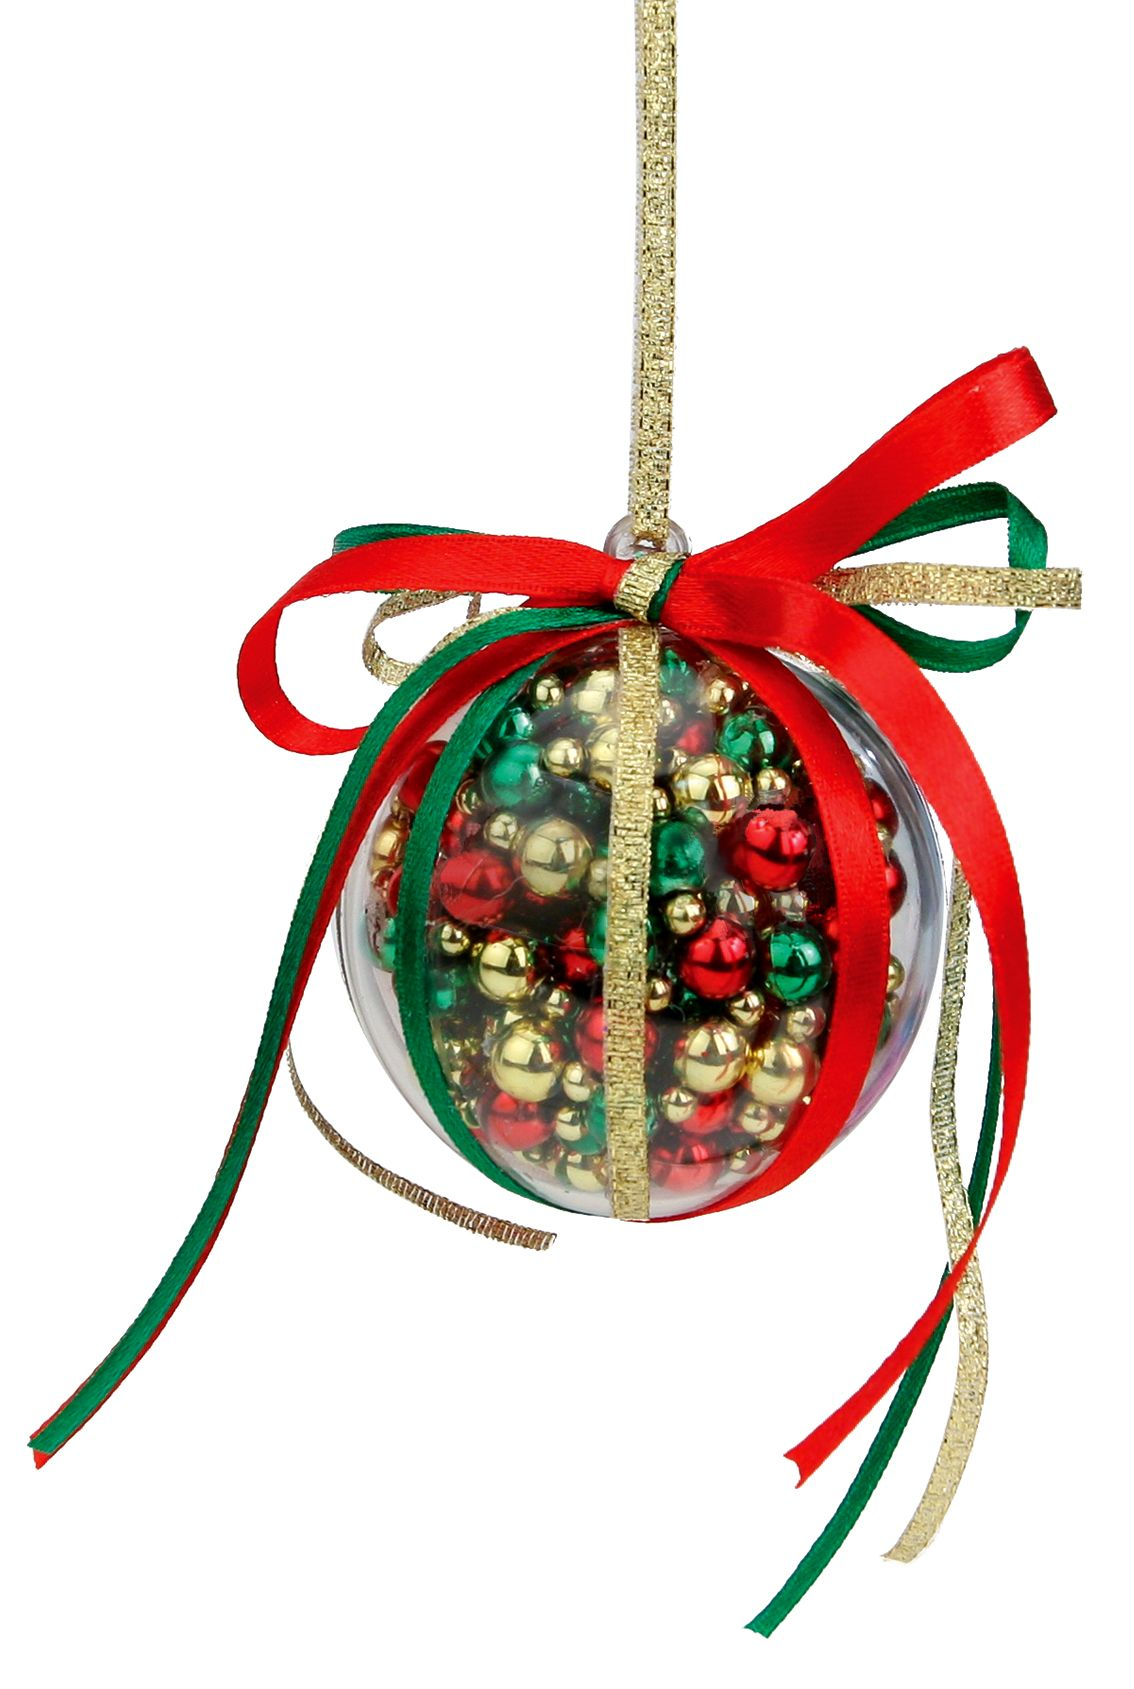 Nicole Crafts Red Green And Gold Bubble Ornament Ornaments Craft Christmas Gold Christmas Decorations Christmas Ornaments To Make Christmas Ornaments